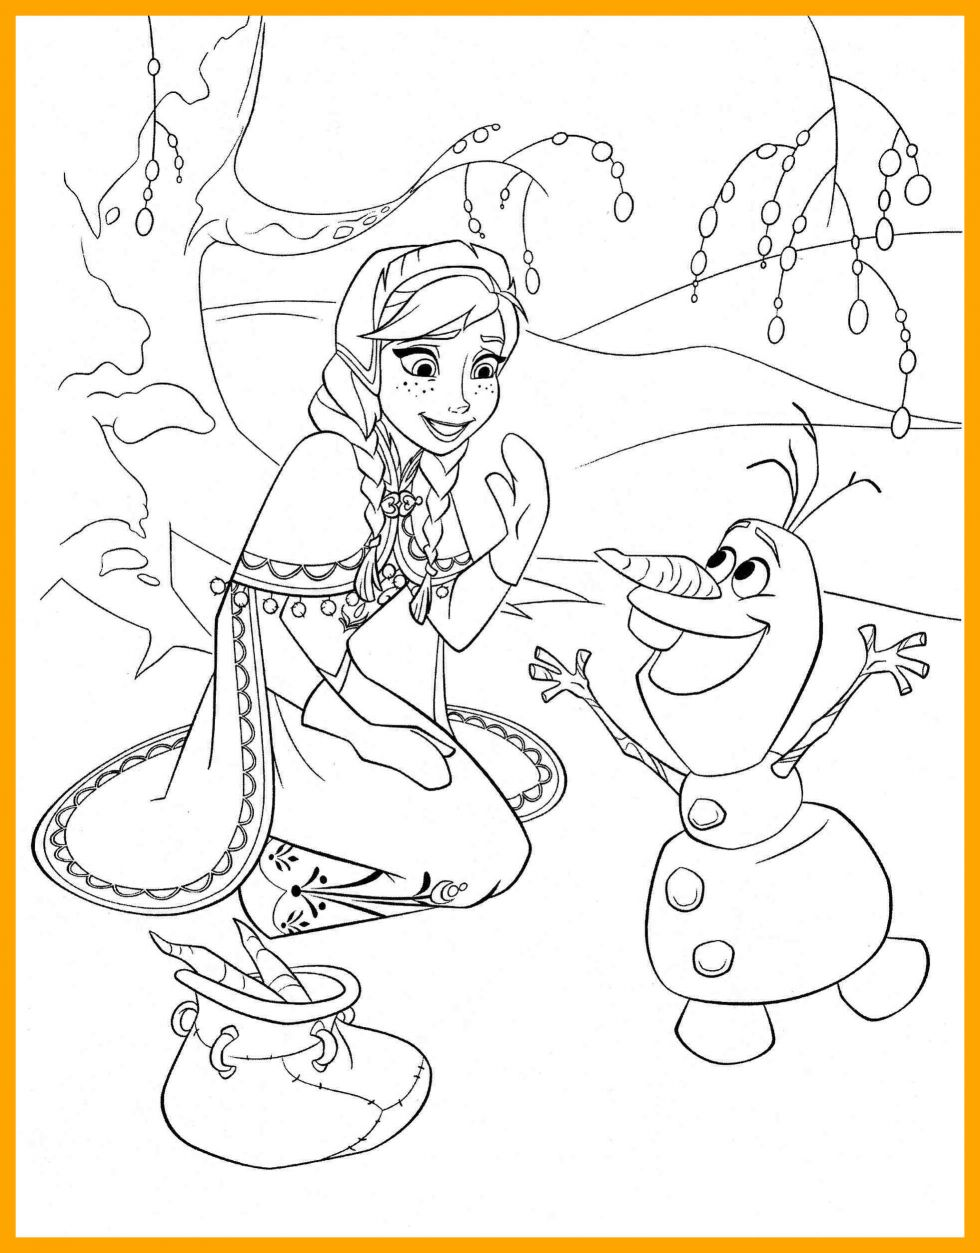 Disney Princess Christmas Coloring Pages Printable With Best Image Collection